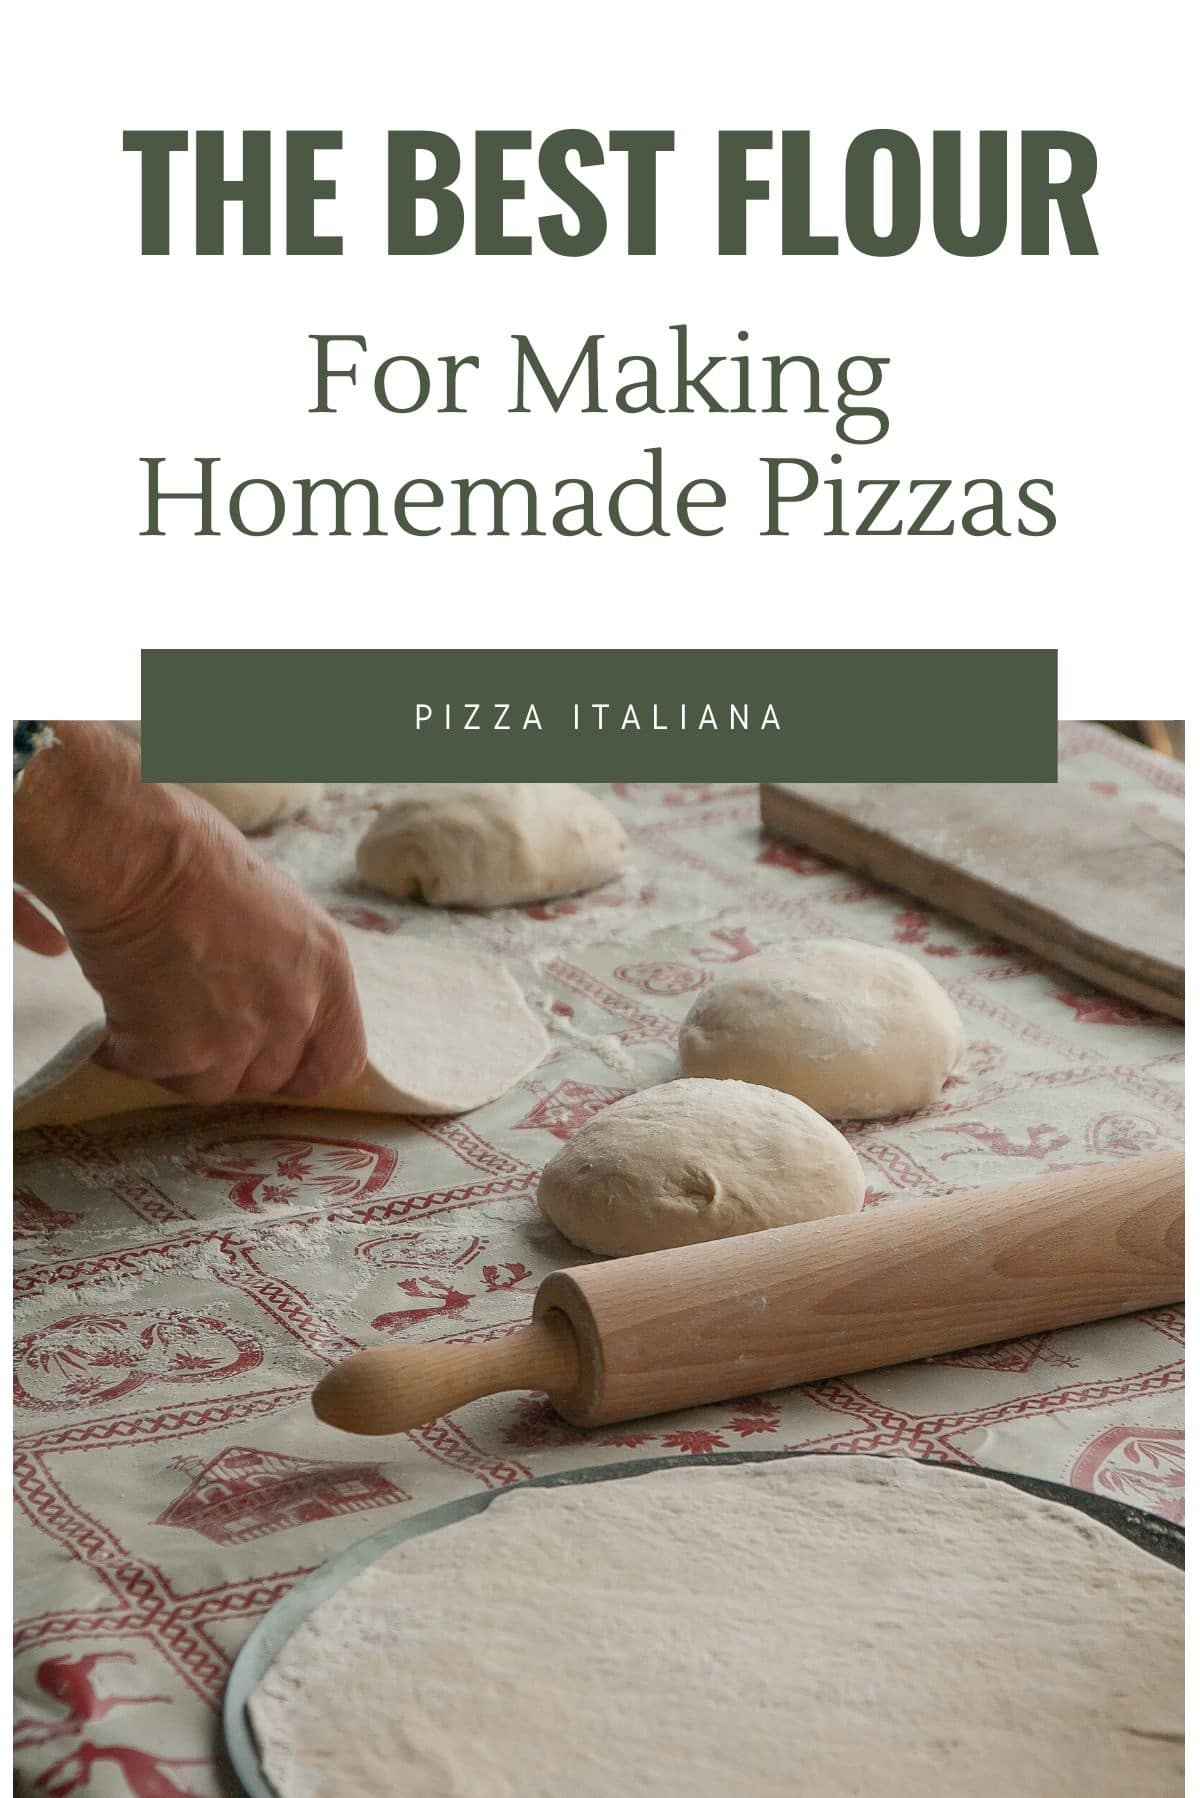 A graphic for the best flour for making homemade pizzas with a photo of a pizza underneath